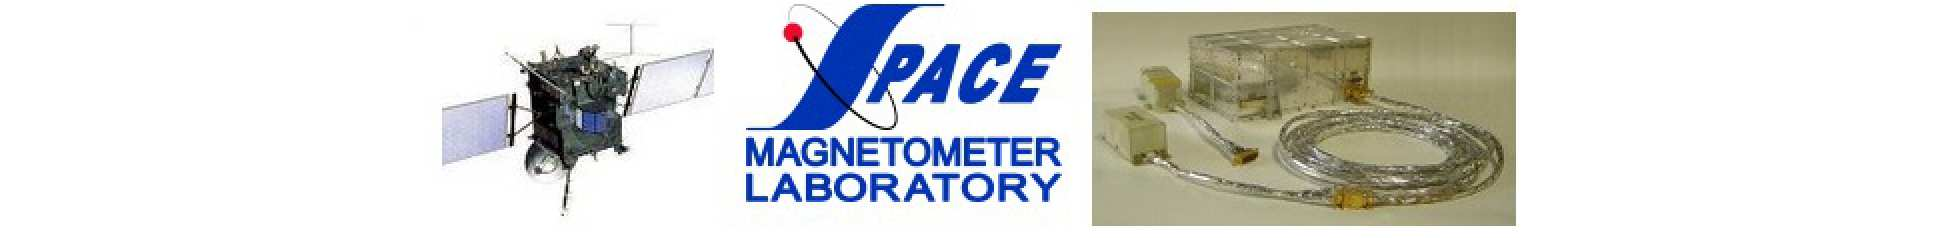 Space Magnetometer Laboratory